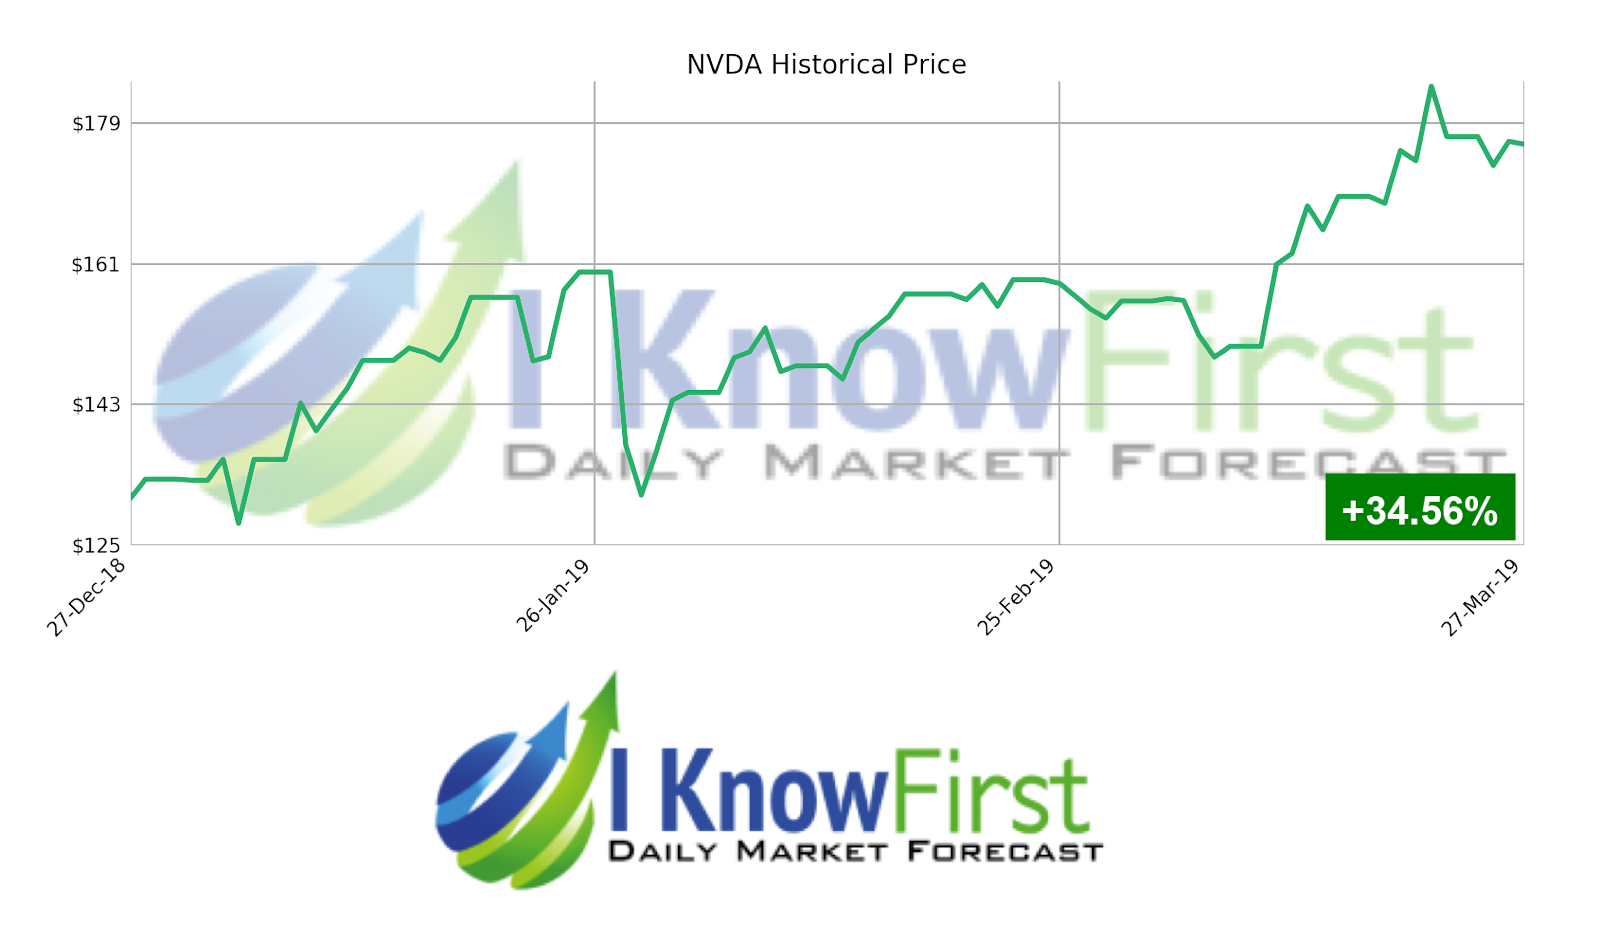 NVDA stock prediction